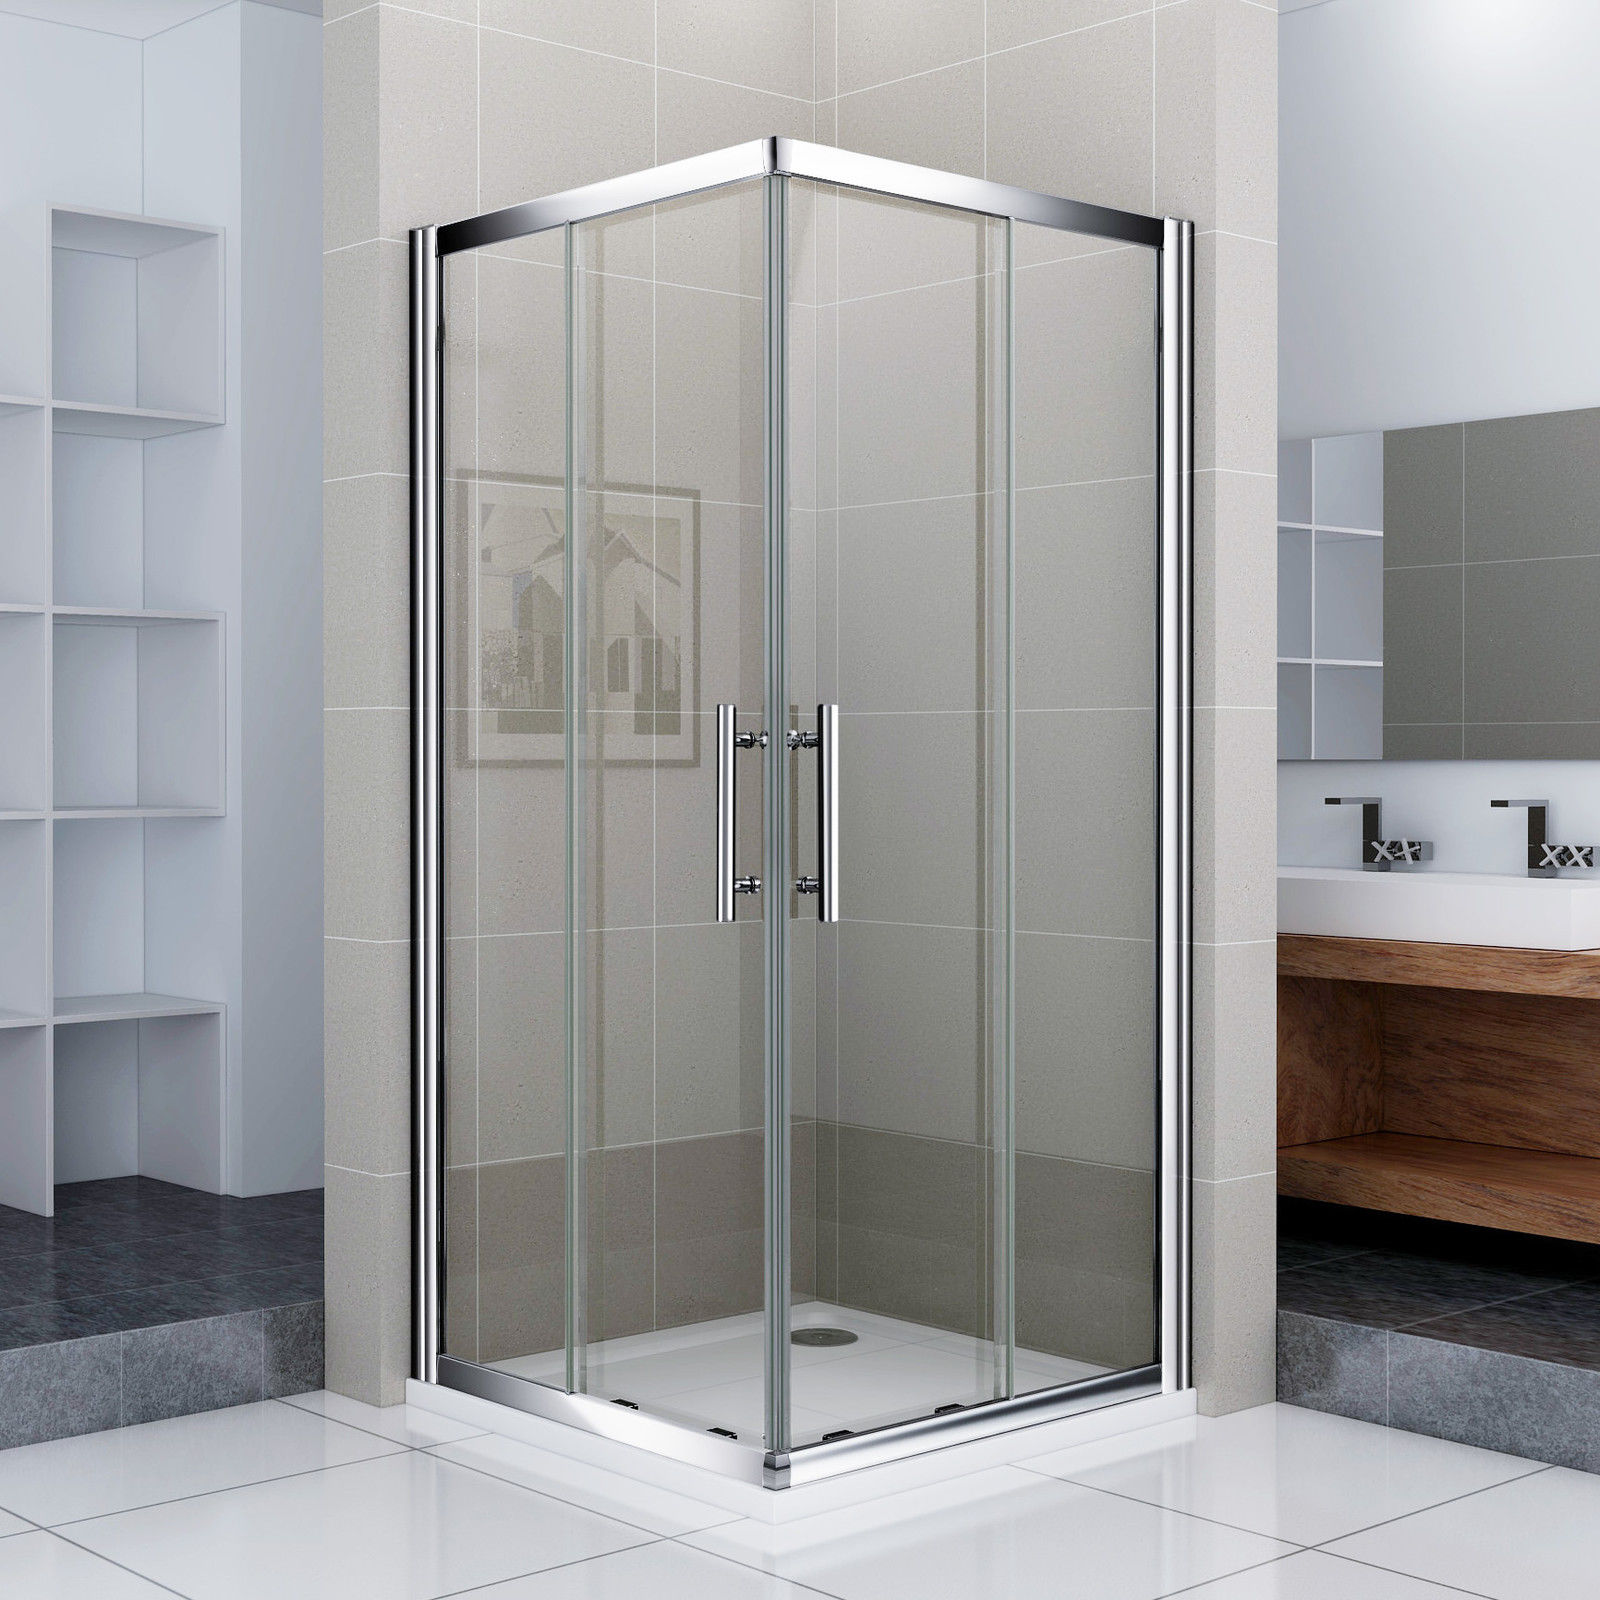 Dusche Ebenerdig Glas : Corner Entry Shower Doors